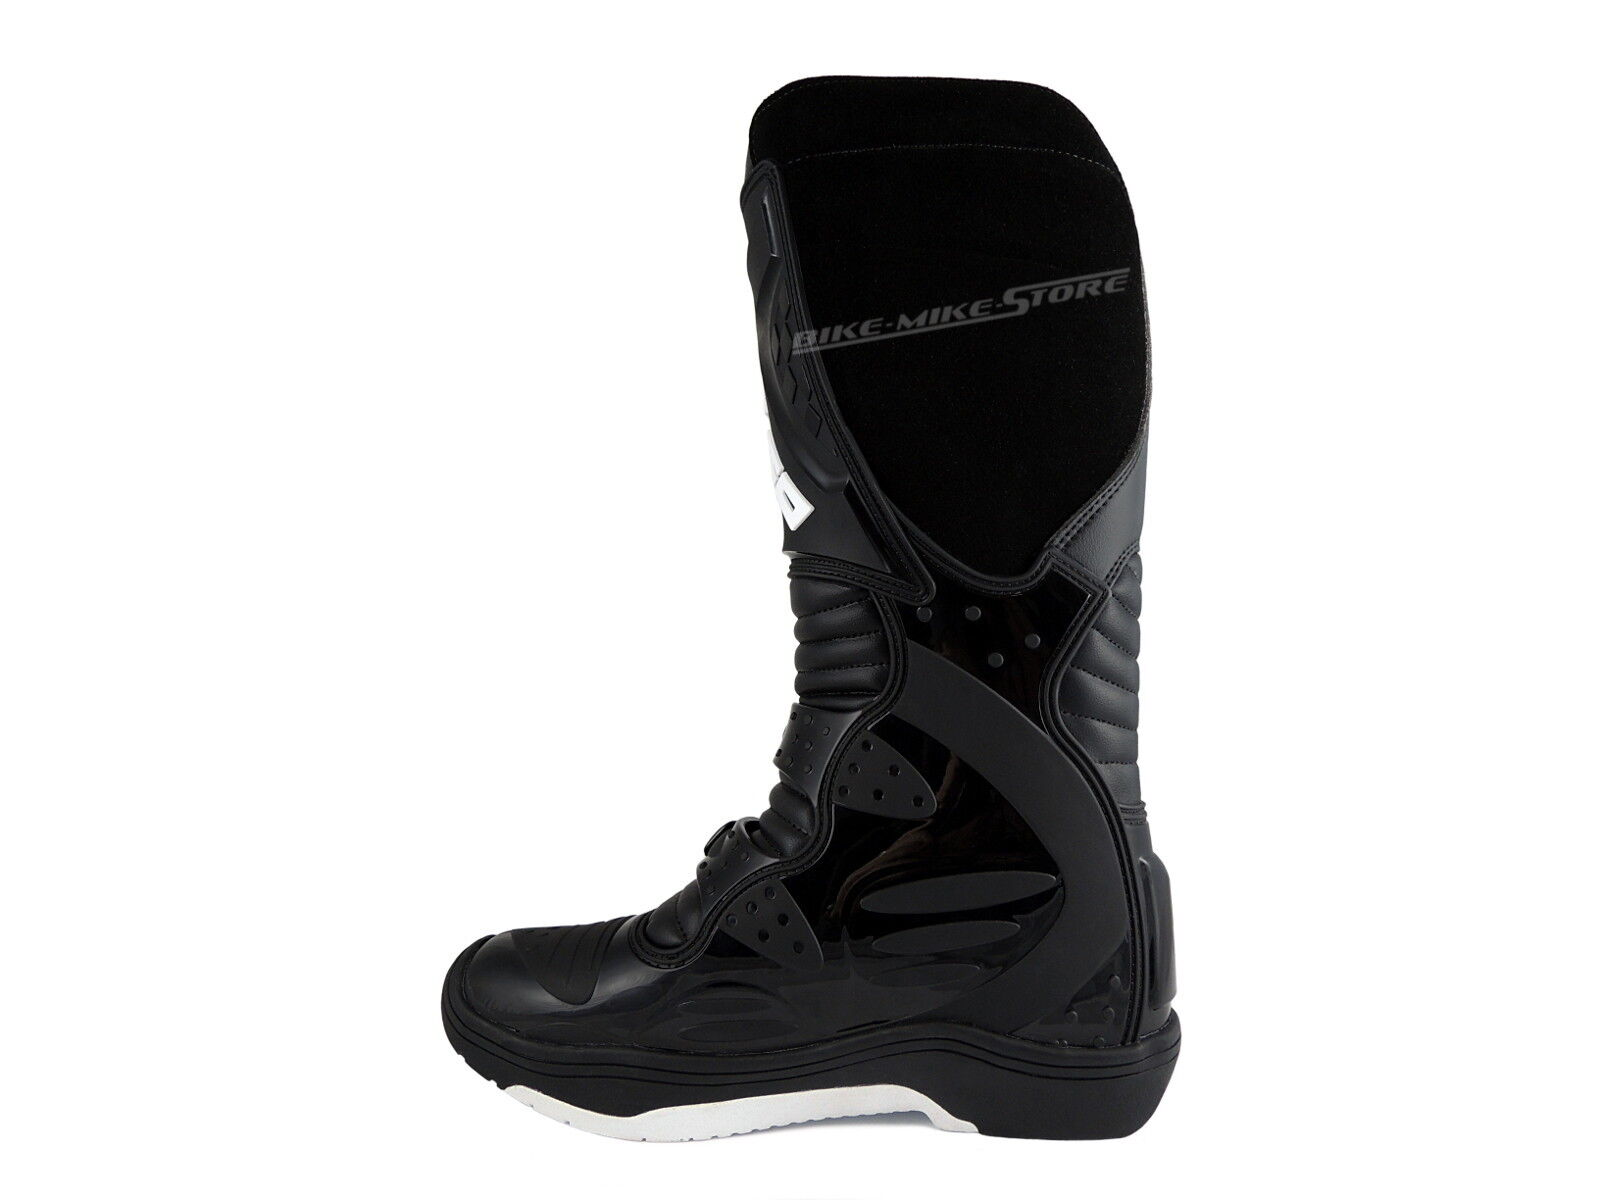 rick owens  Noir  owens creeper bottes / chaussures taille ue 39,5 (environ 9,5) ordinaires (m, b) 7070be